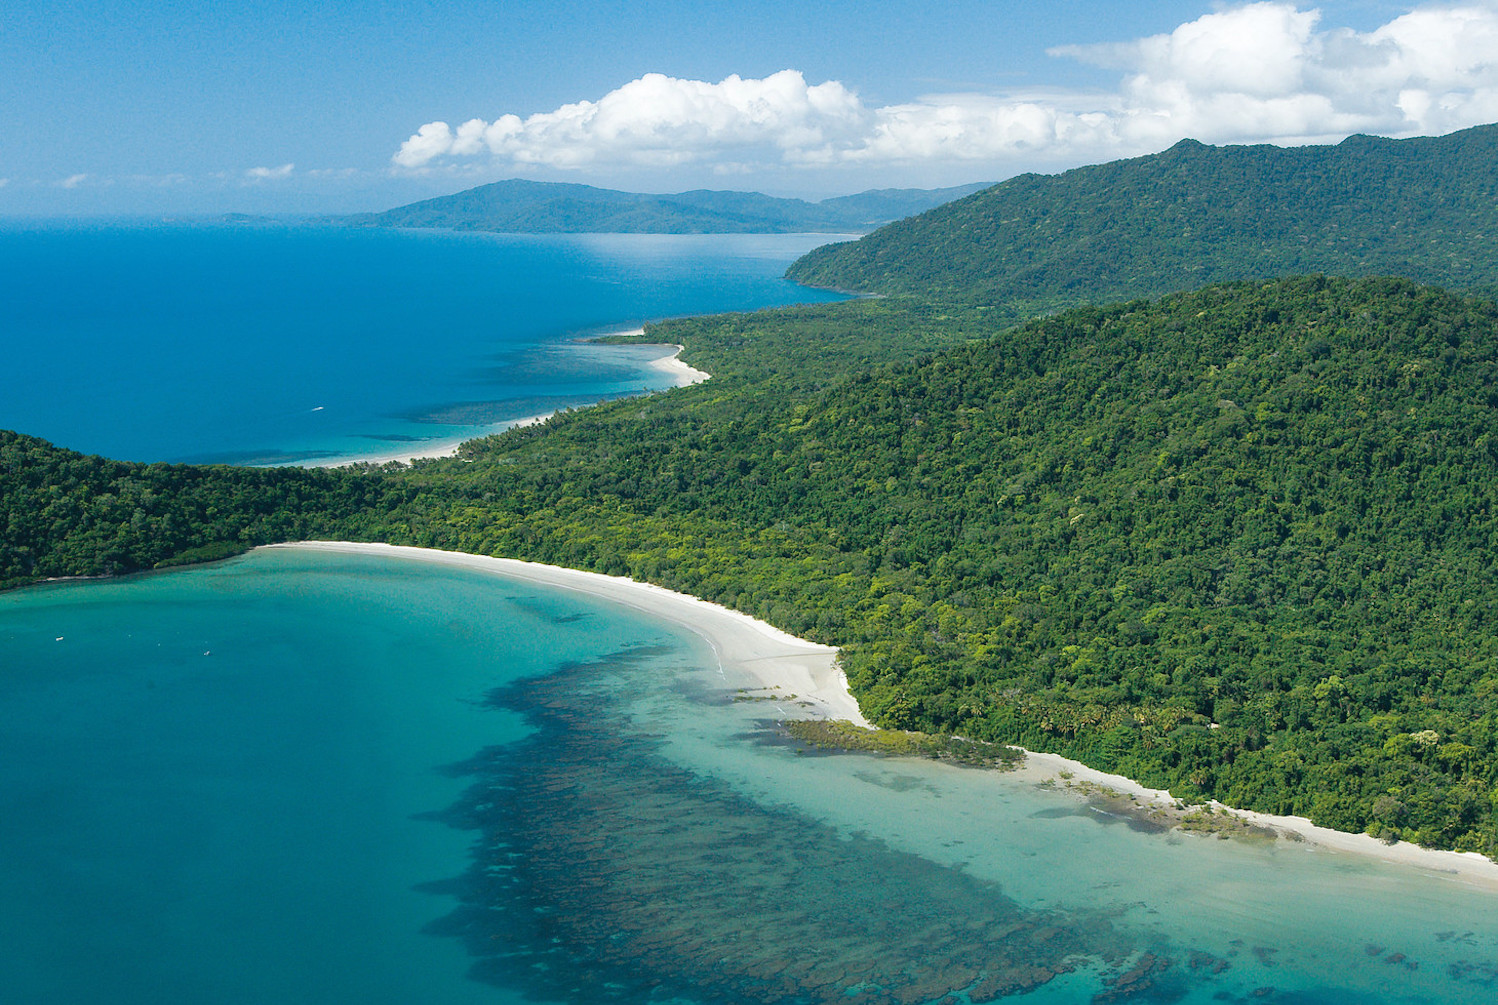 Where the Daintree rainforest meets the Coral Sea